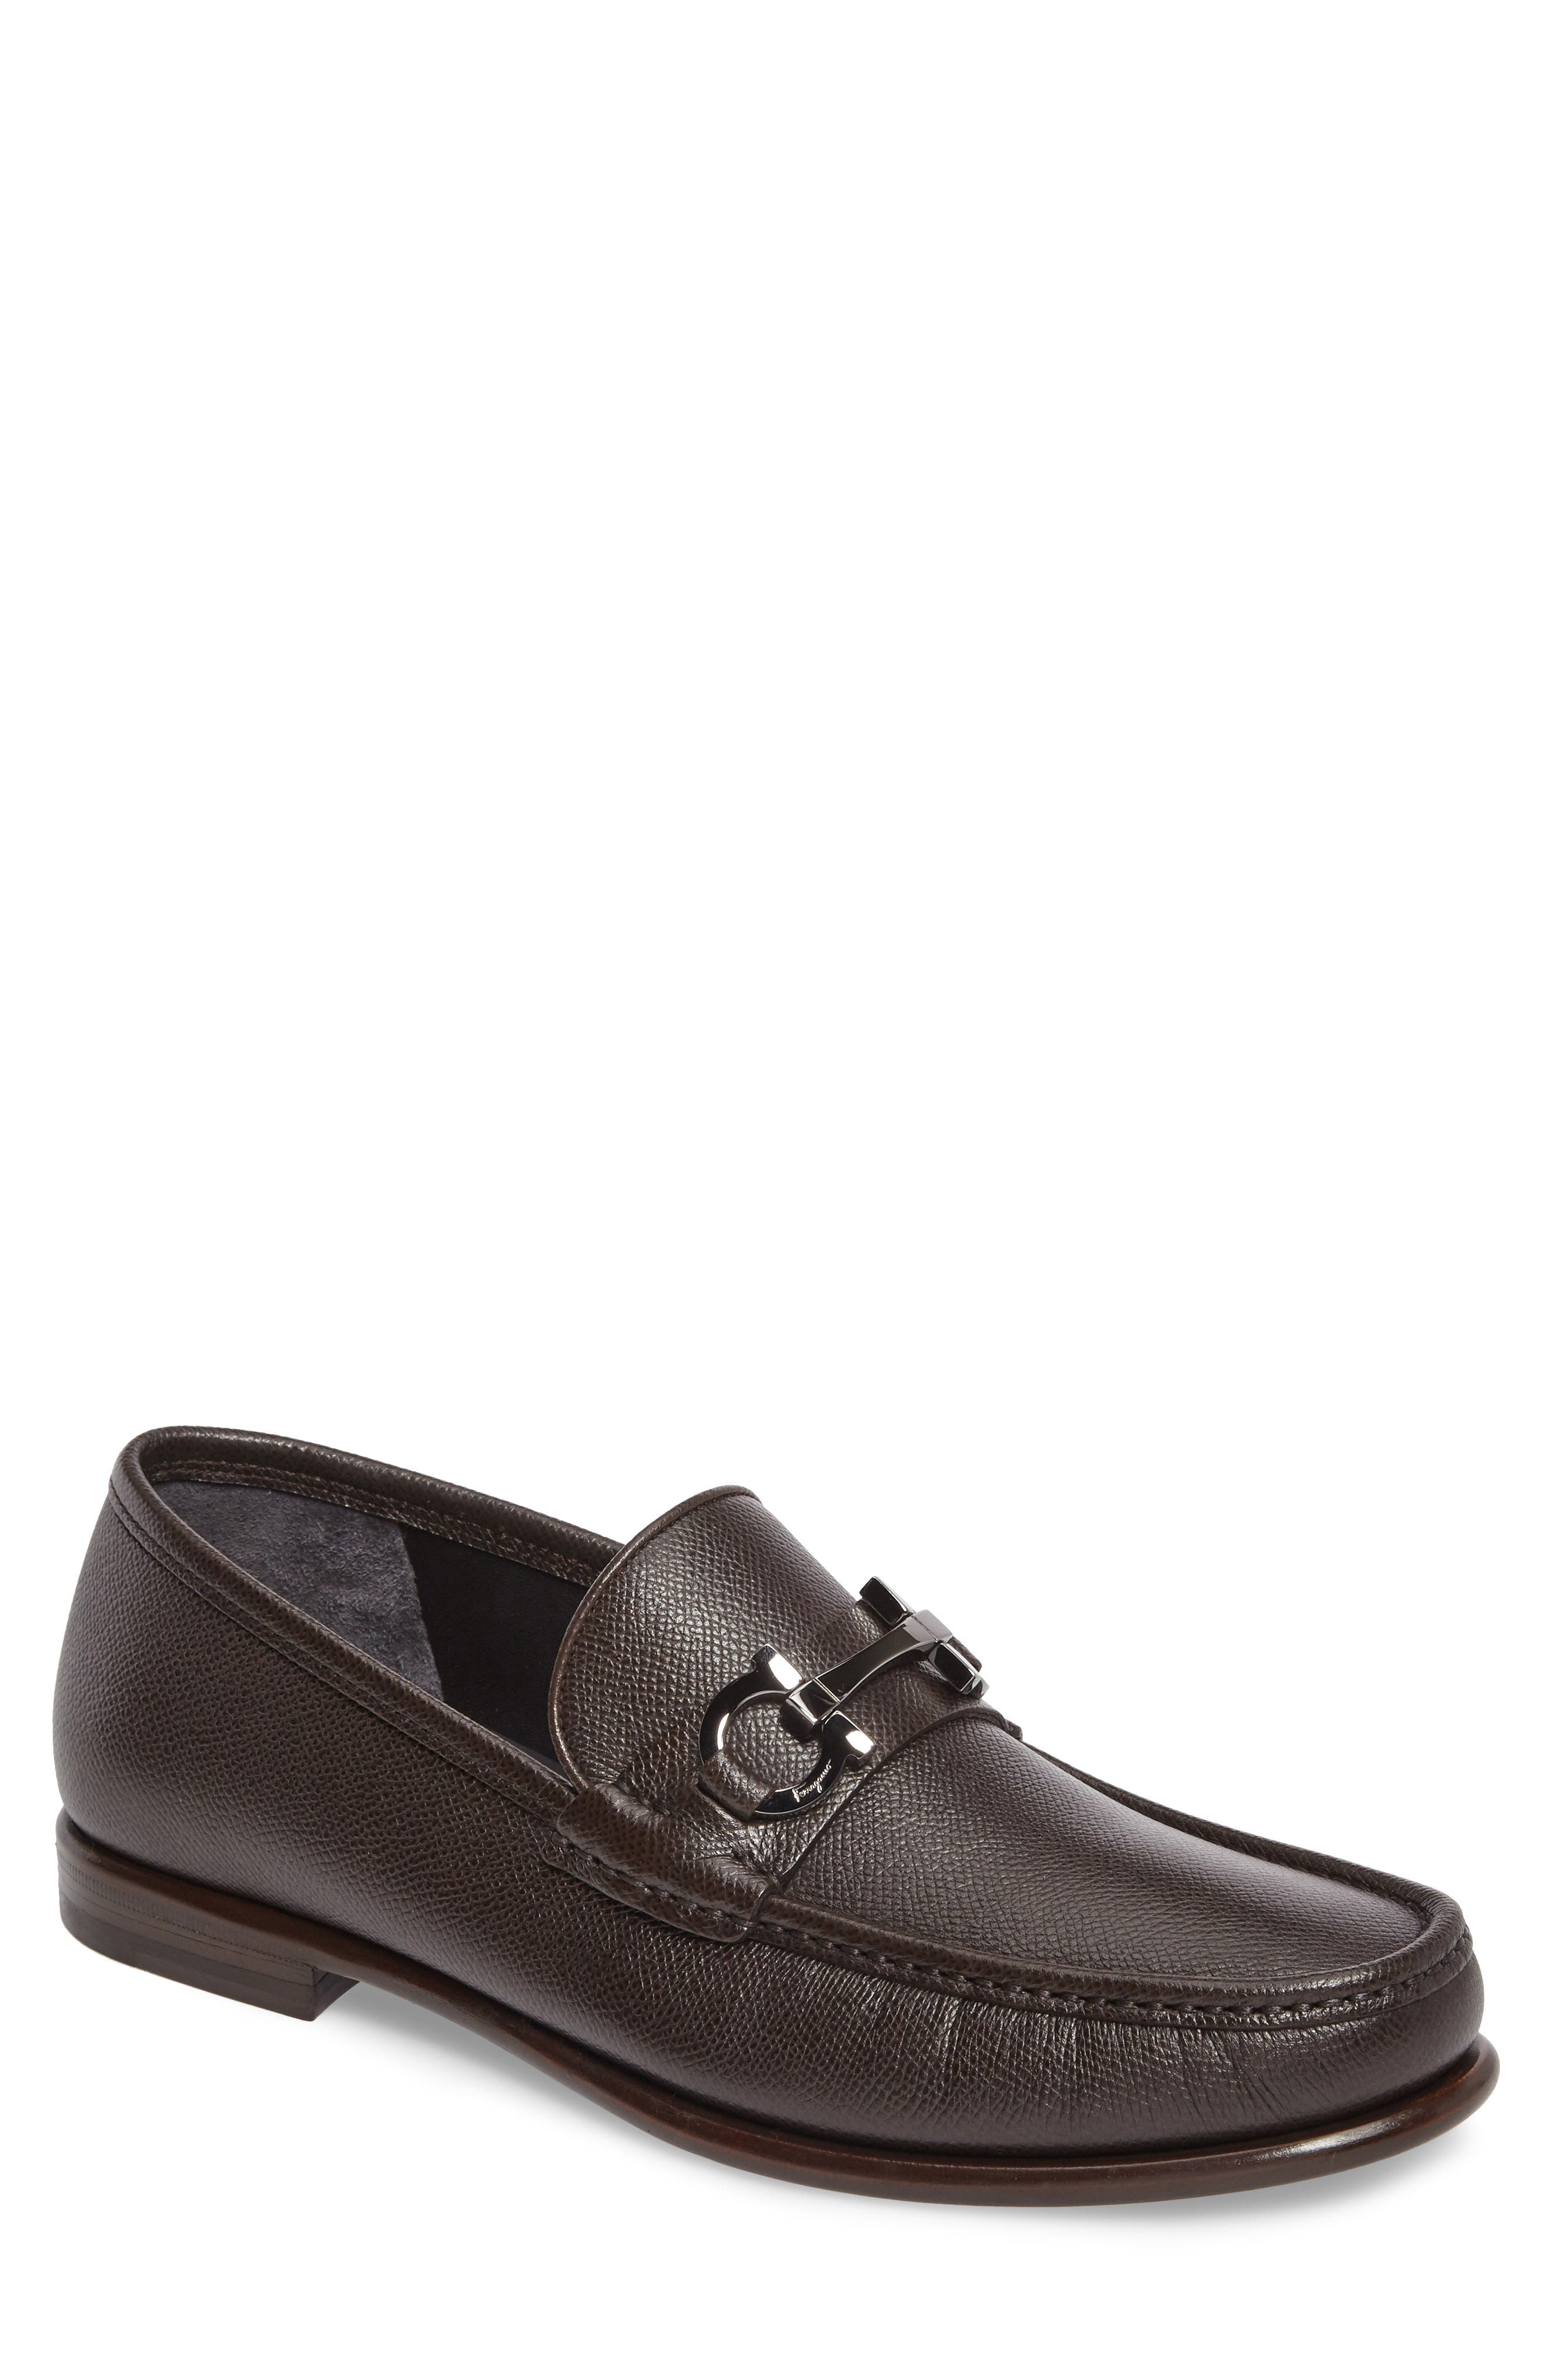 Crown Bit Loafer,                         Main,                         color, T.Moro